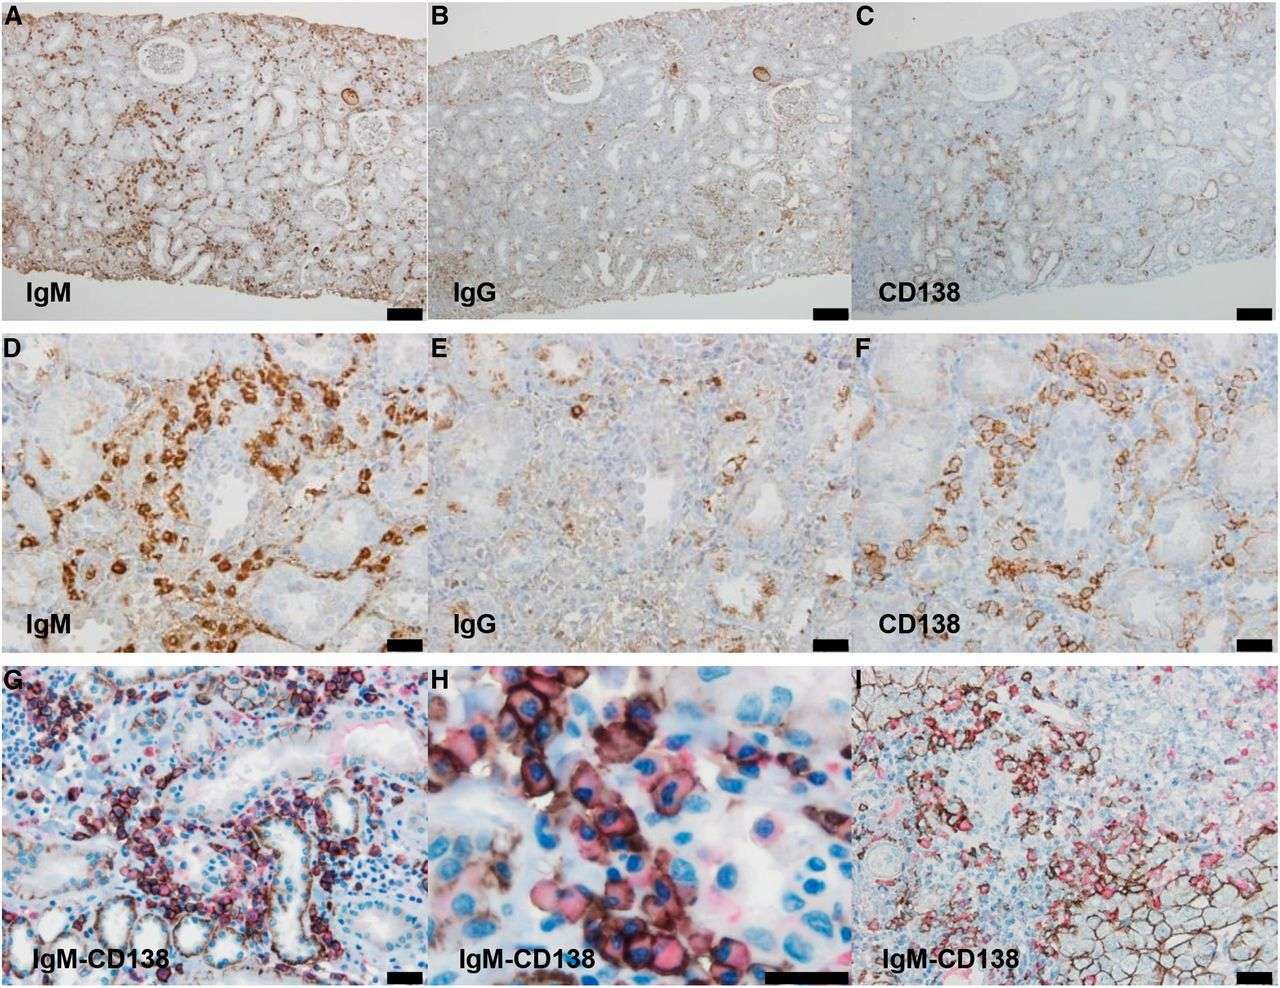 Tubulointerstitial Nephritis with IgM-Positive Plasma Cells